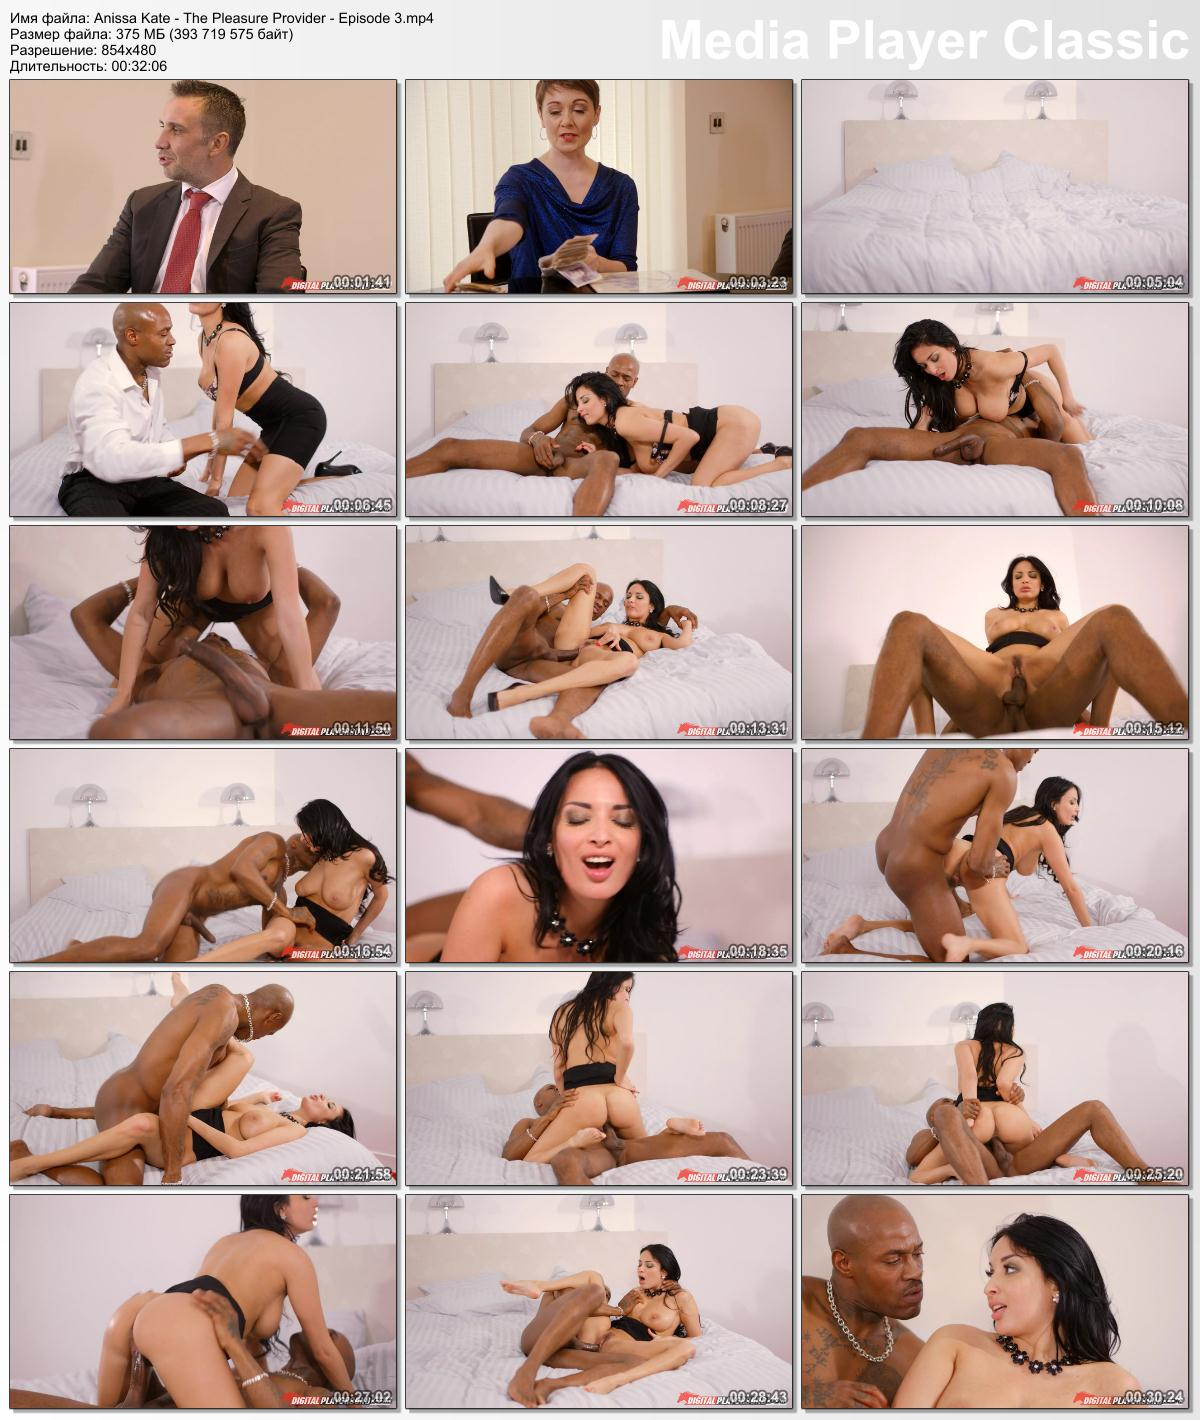 http://picpicture.com/images/2016/07/27/AnissaKate-ThePleasureProvider-Episode3.mp4_thumbs_2016.07.27_08.26.24.jpg